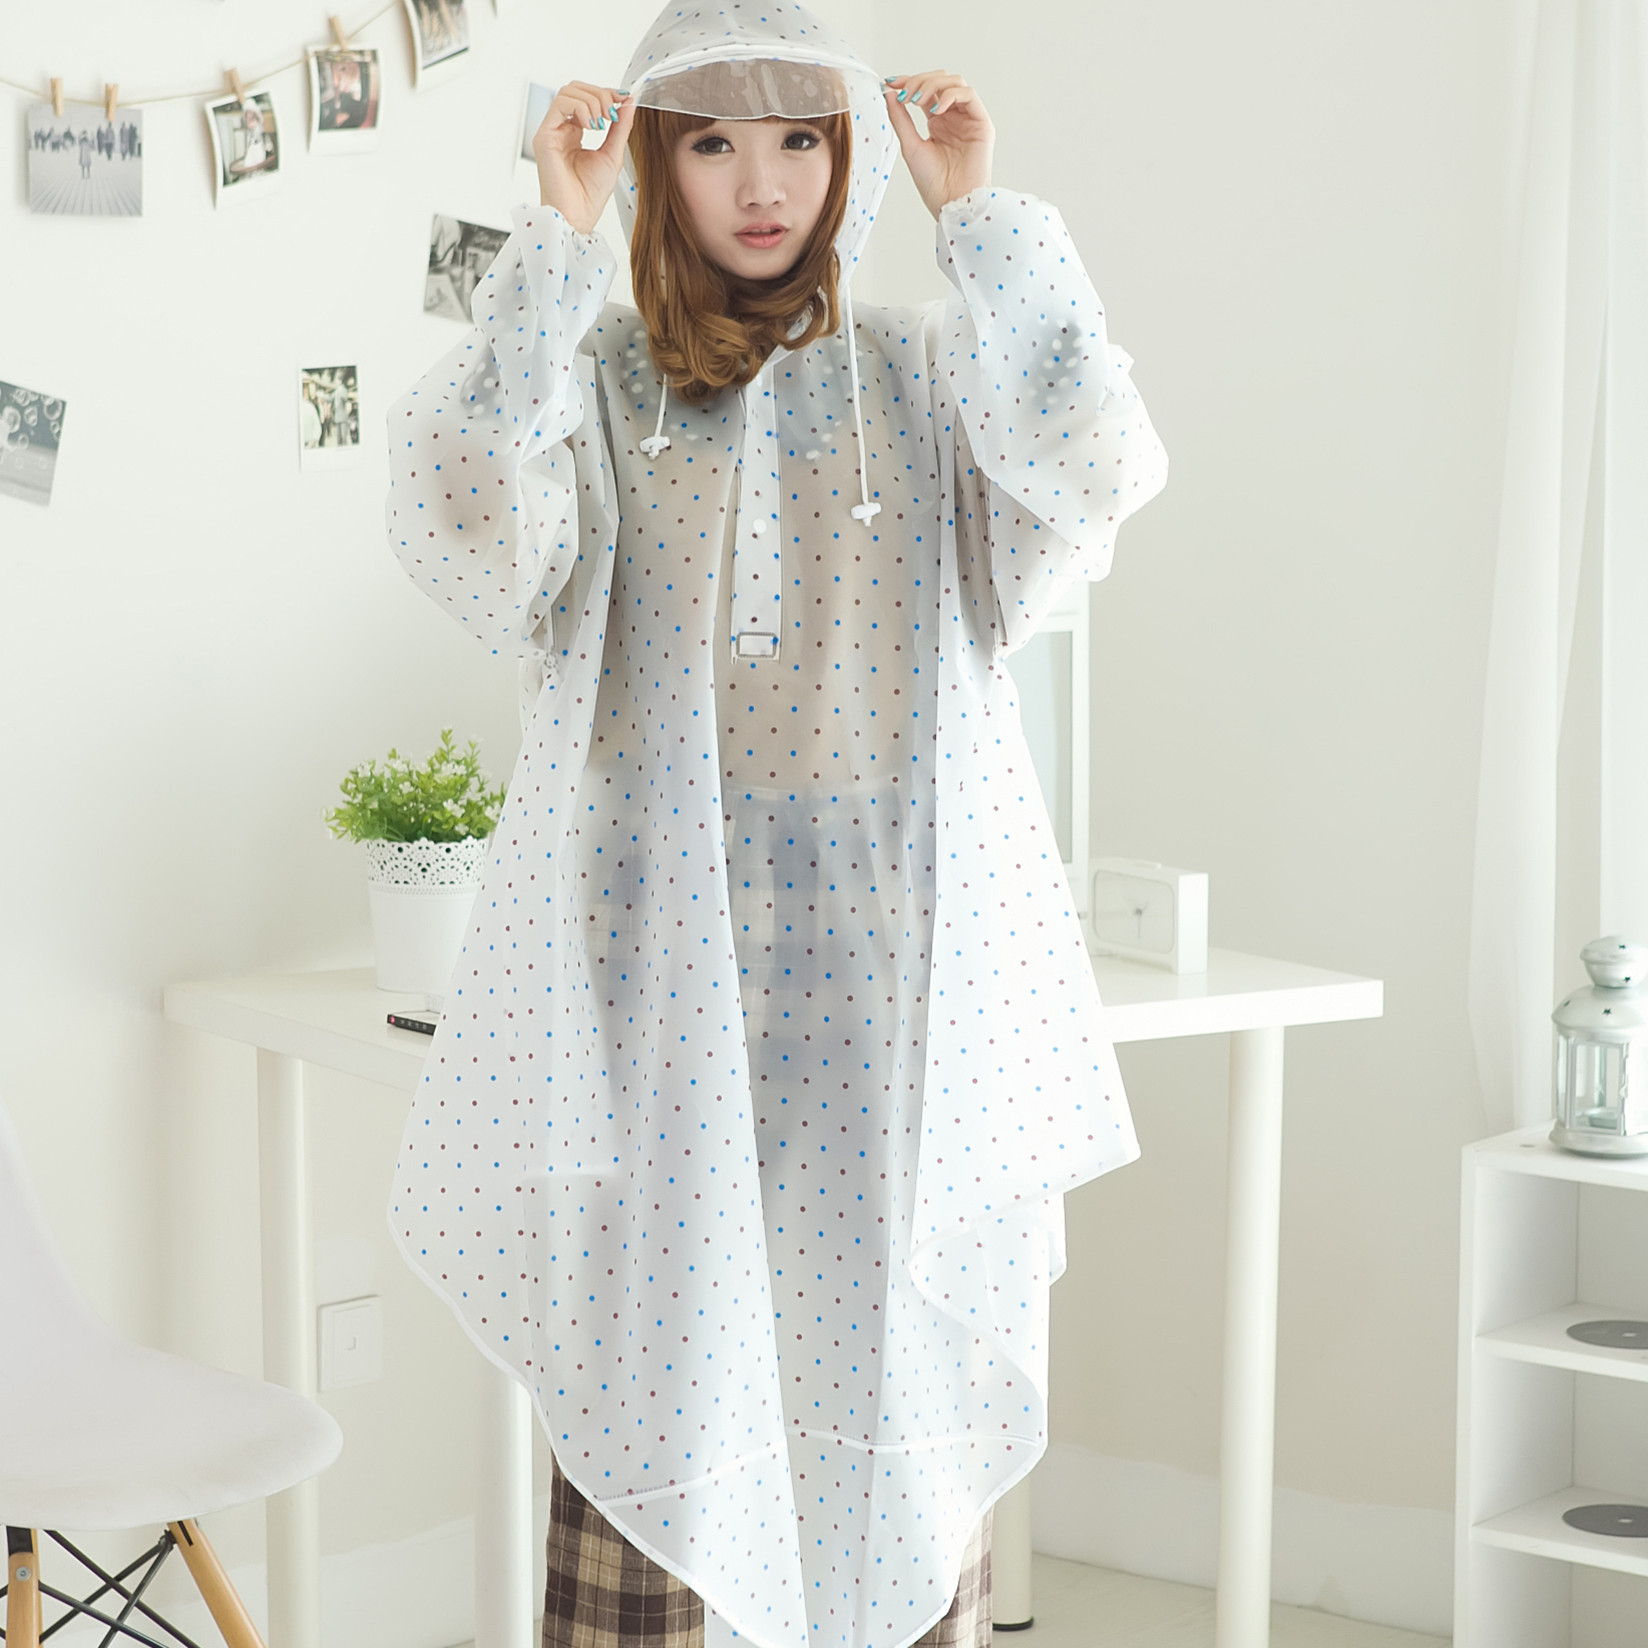 Polka dot eva transparent big hat brim with sleeves bicycle electric bicycle battery car raincoat poncho